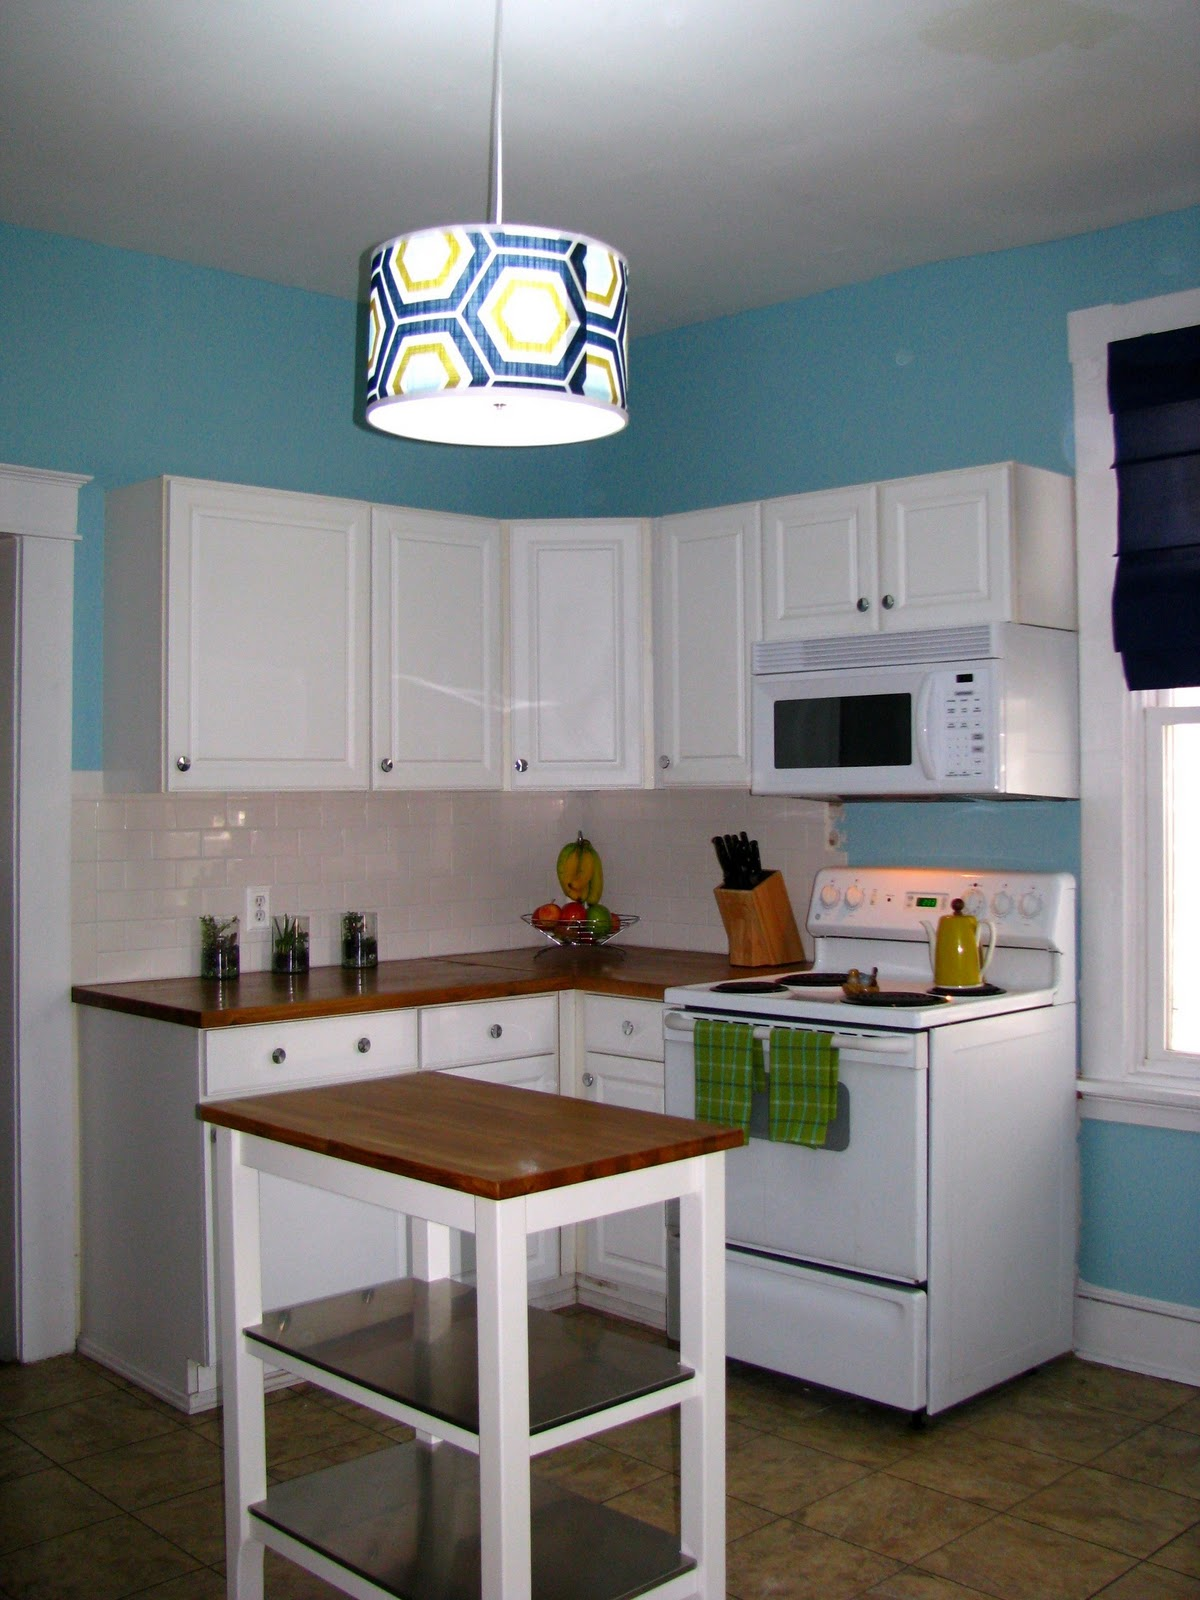 Remodel Kitchen Cheap Whisk Electric Remodelaholic On The